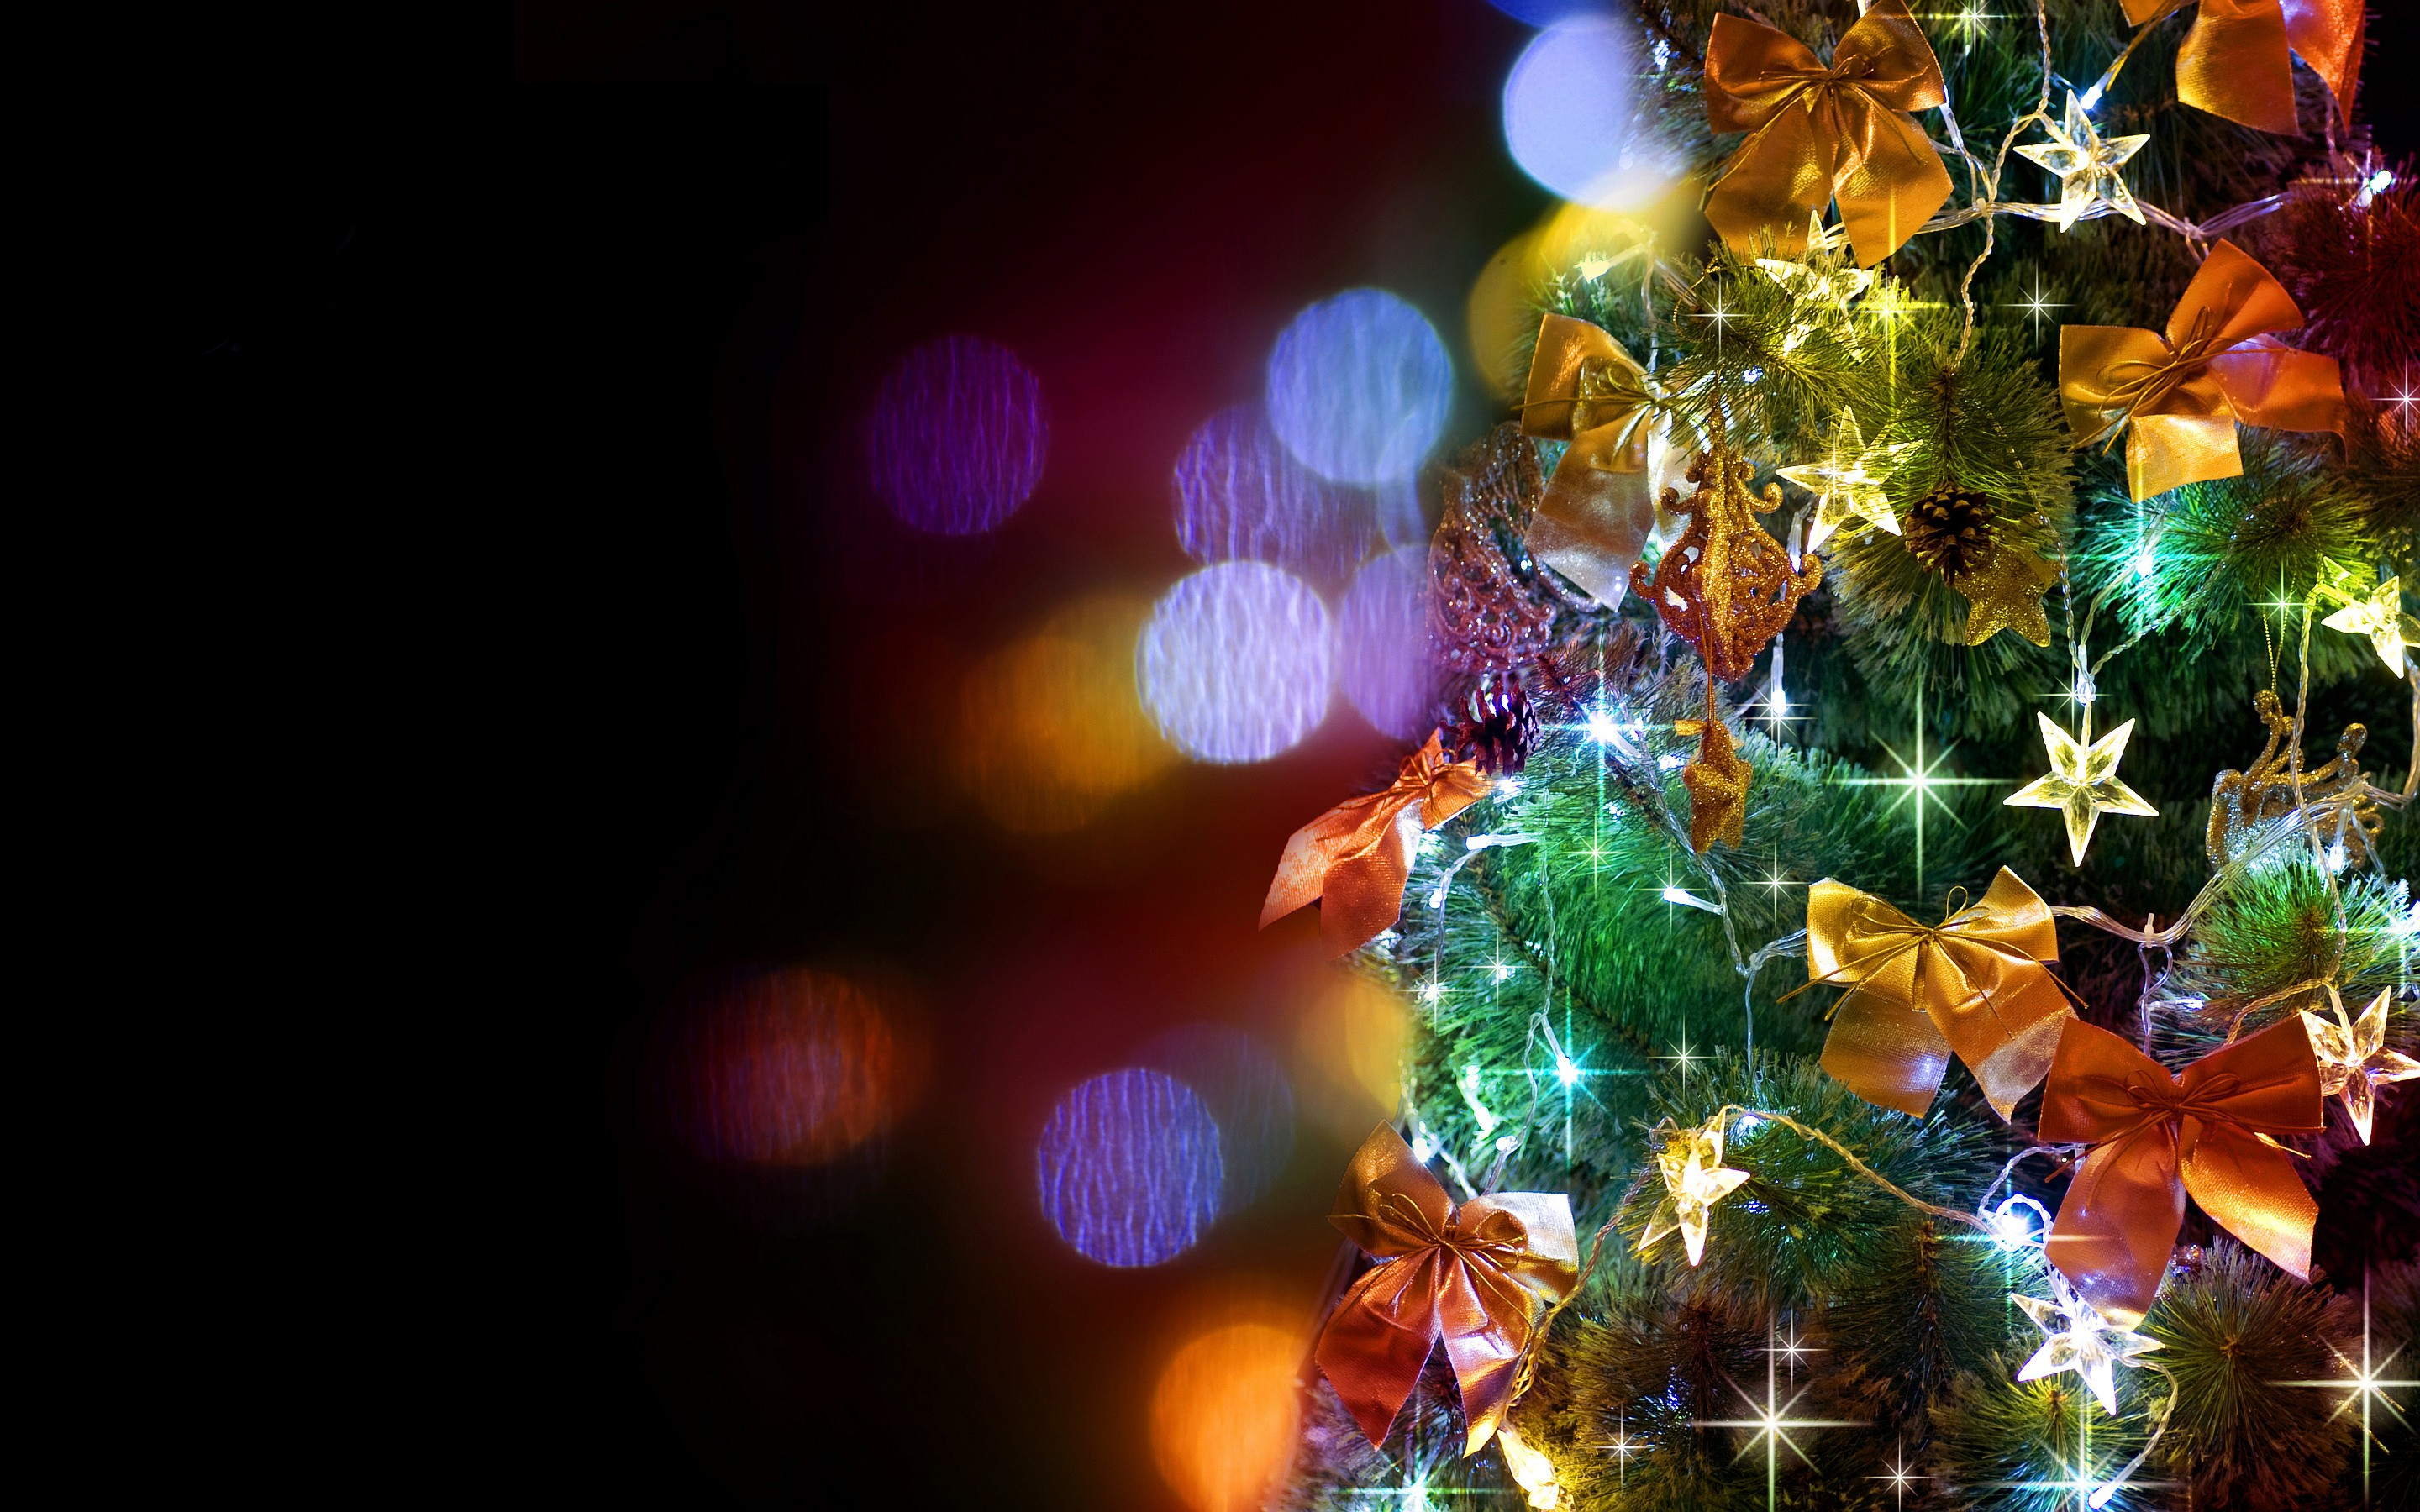 christmas wallpapers & images: christmas hd wallpapers for desktop